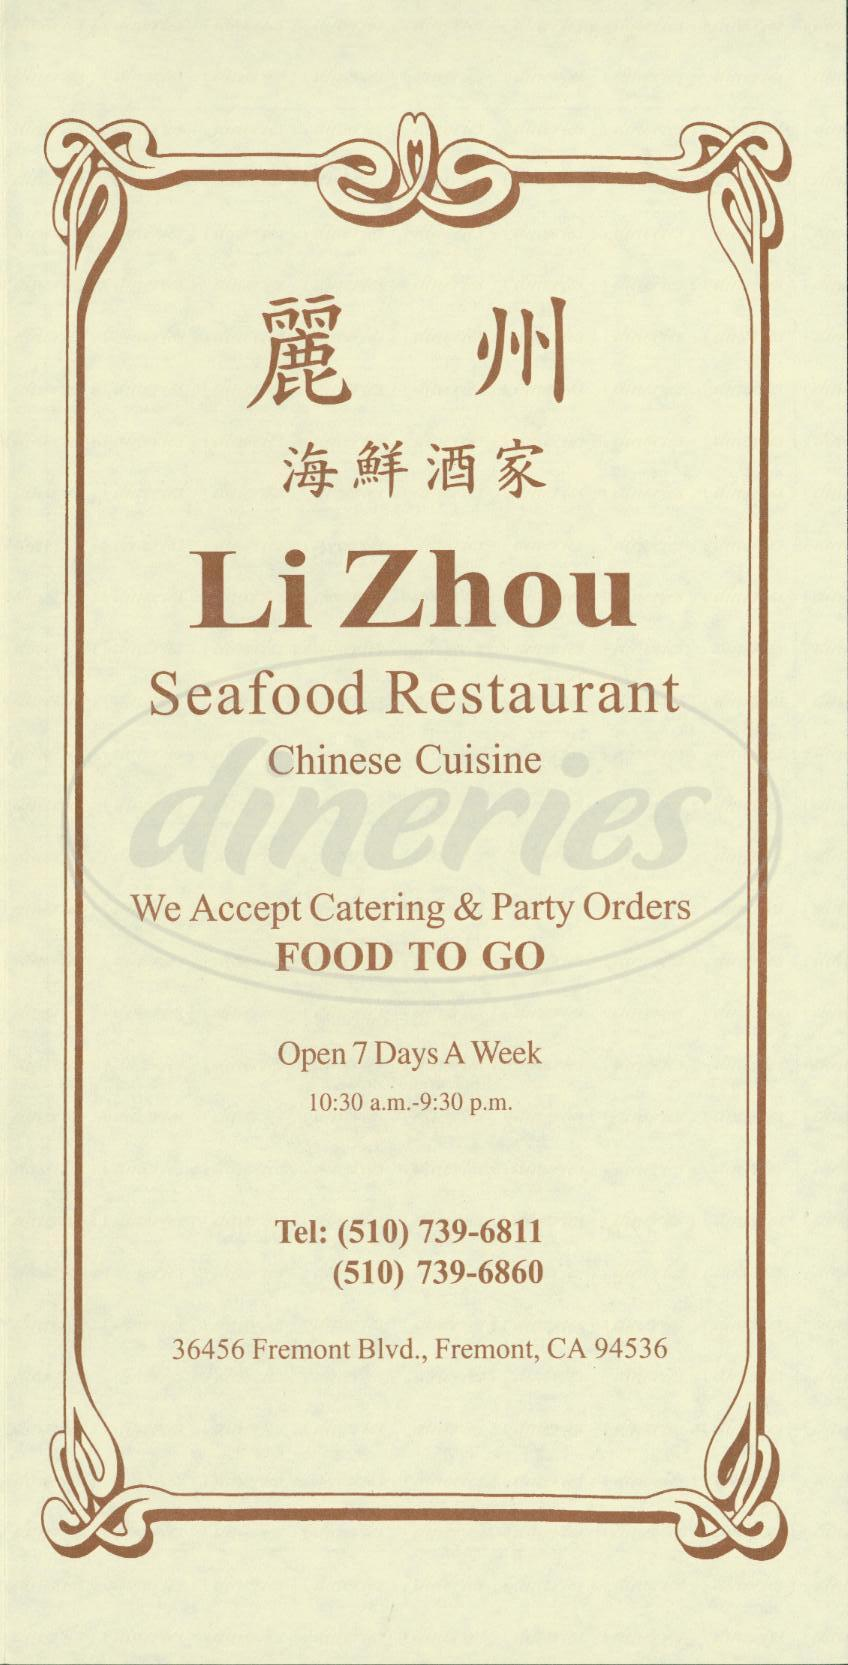 menu for Li Zhou Seafood Restaurant